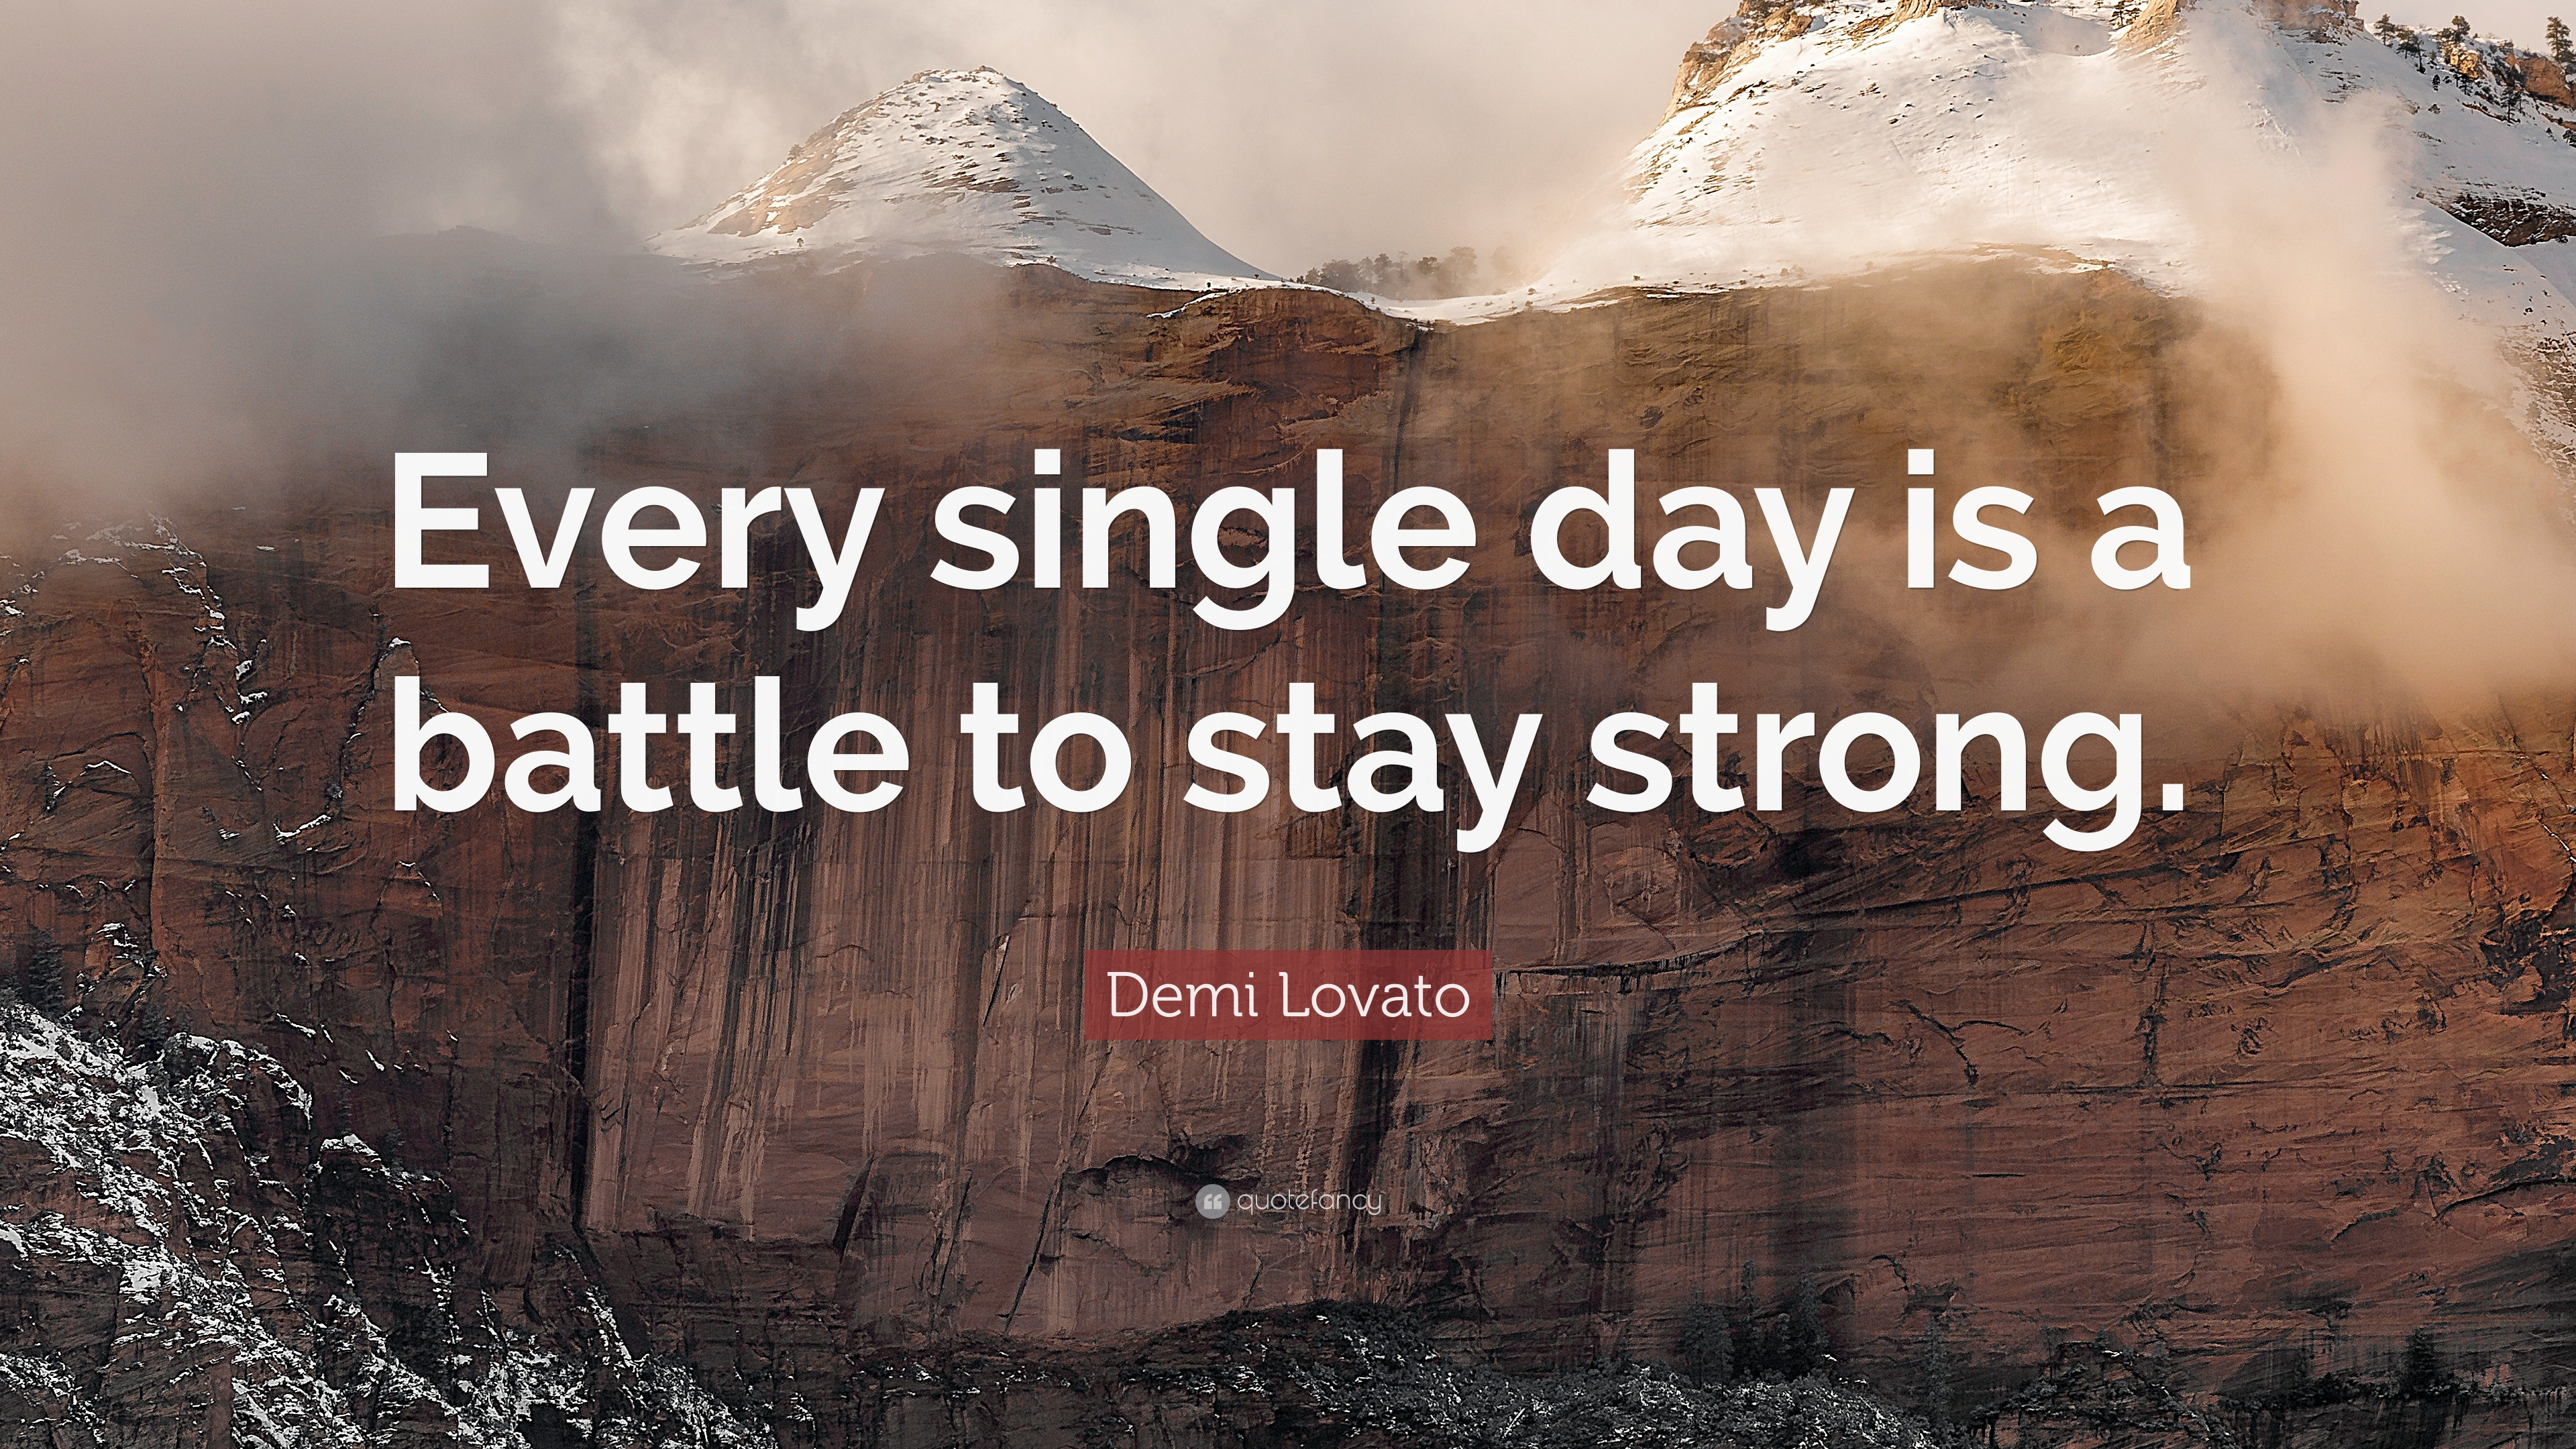 Demi lovato quote every single day is a battle to stay strong demi lovato quote every single day is a battle to stay strong voltagebd